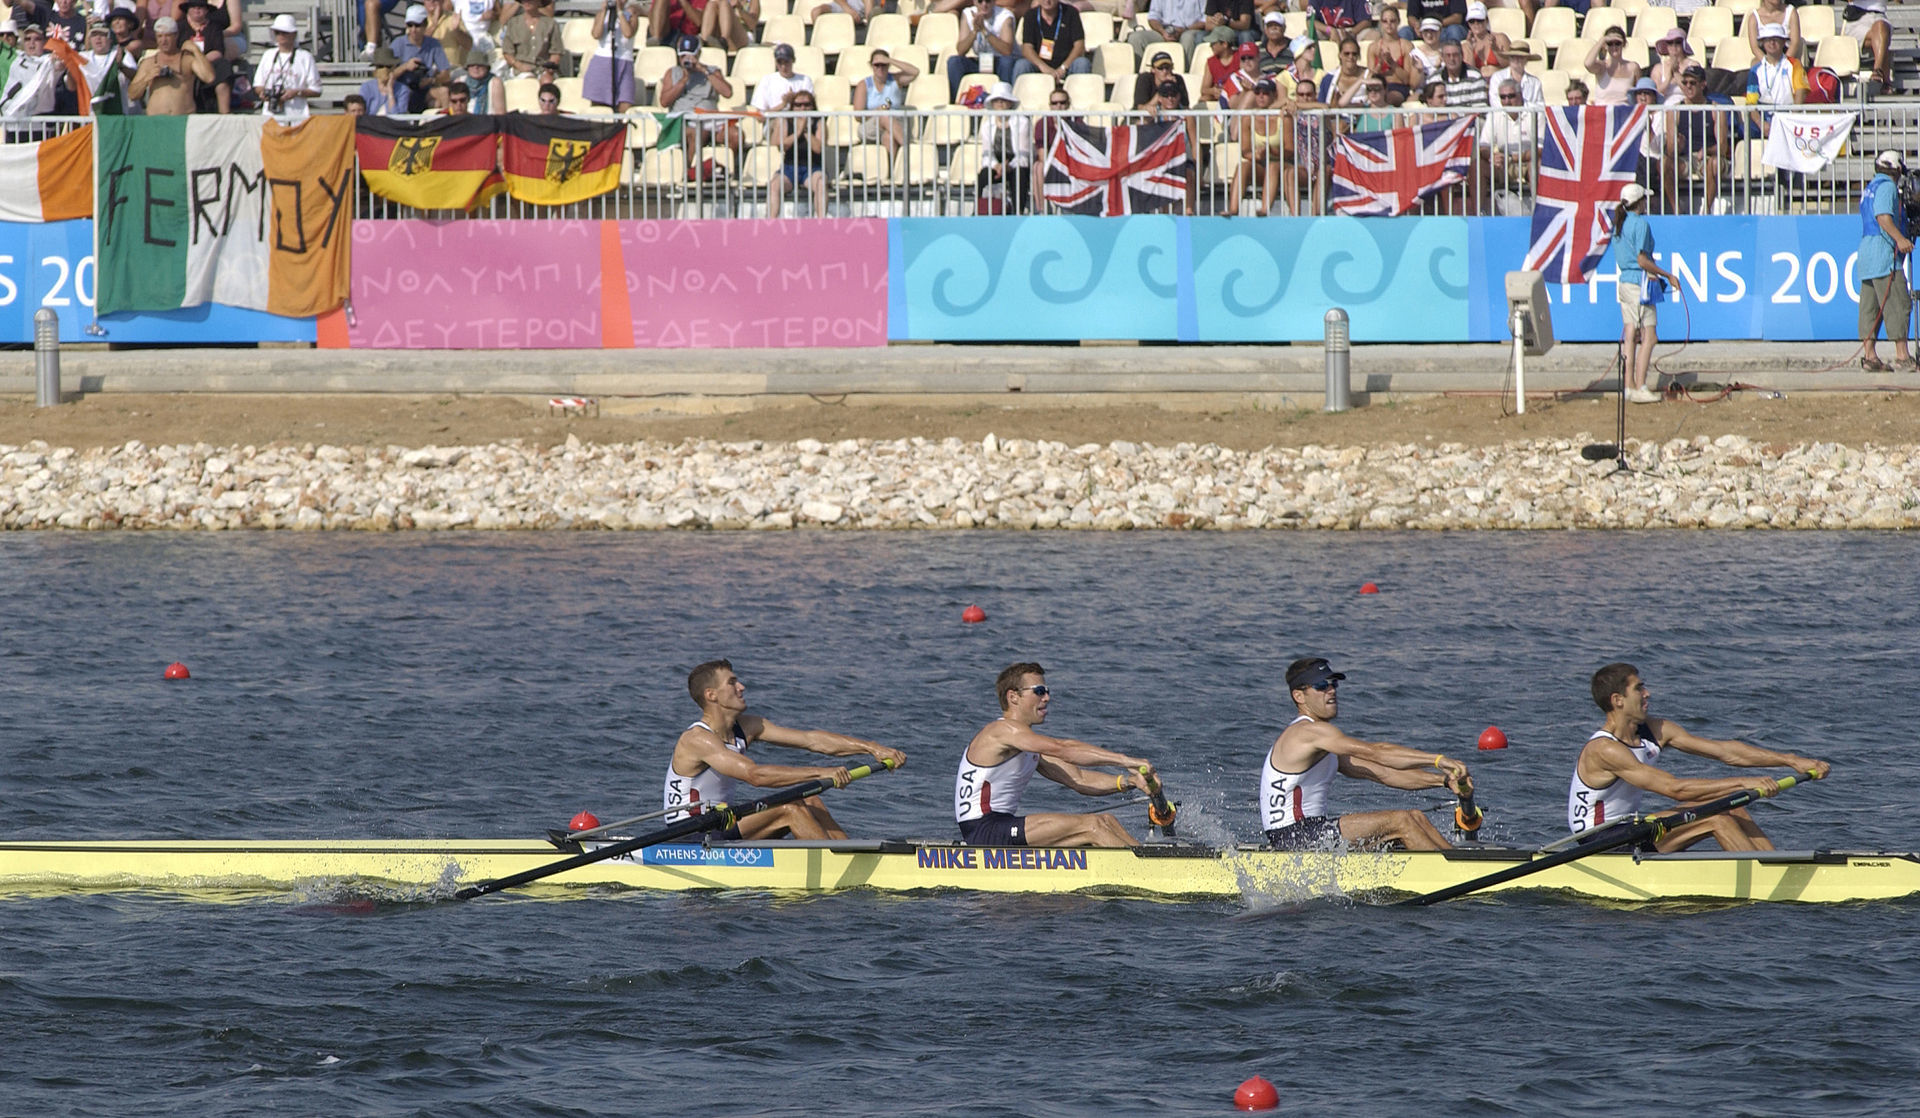 USA Mens Lightweight Four Athens 2004